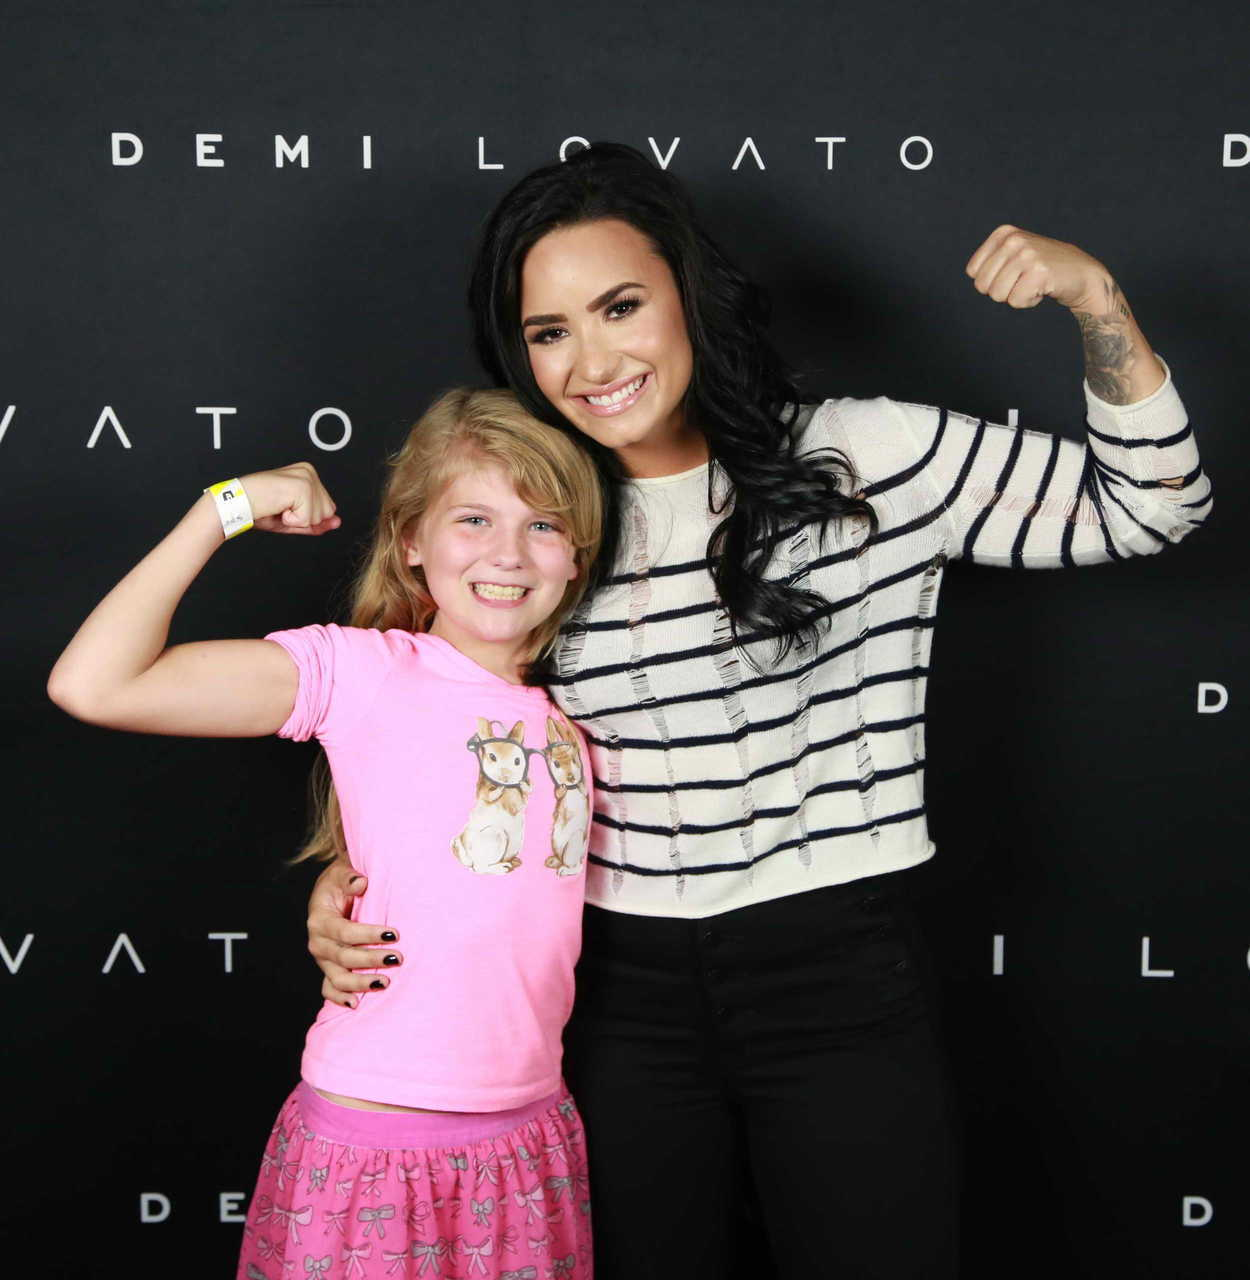 Demi lovato at the meet and greet in kansas city 08062016 demi lovato at the meet and greet in kansas city 08062016 m4hsunfo